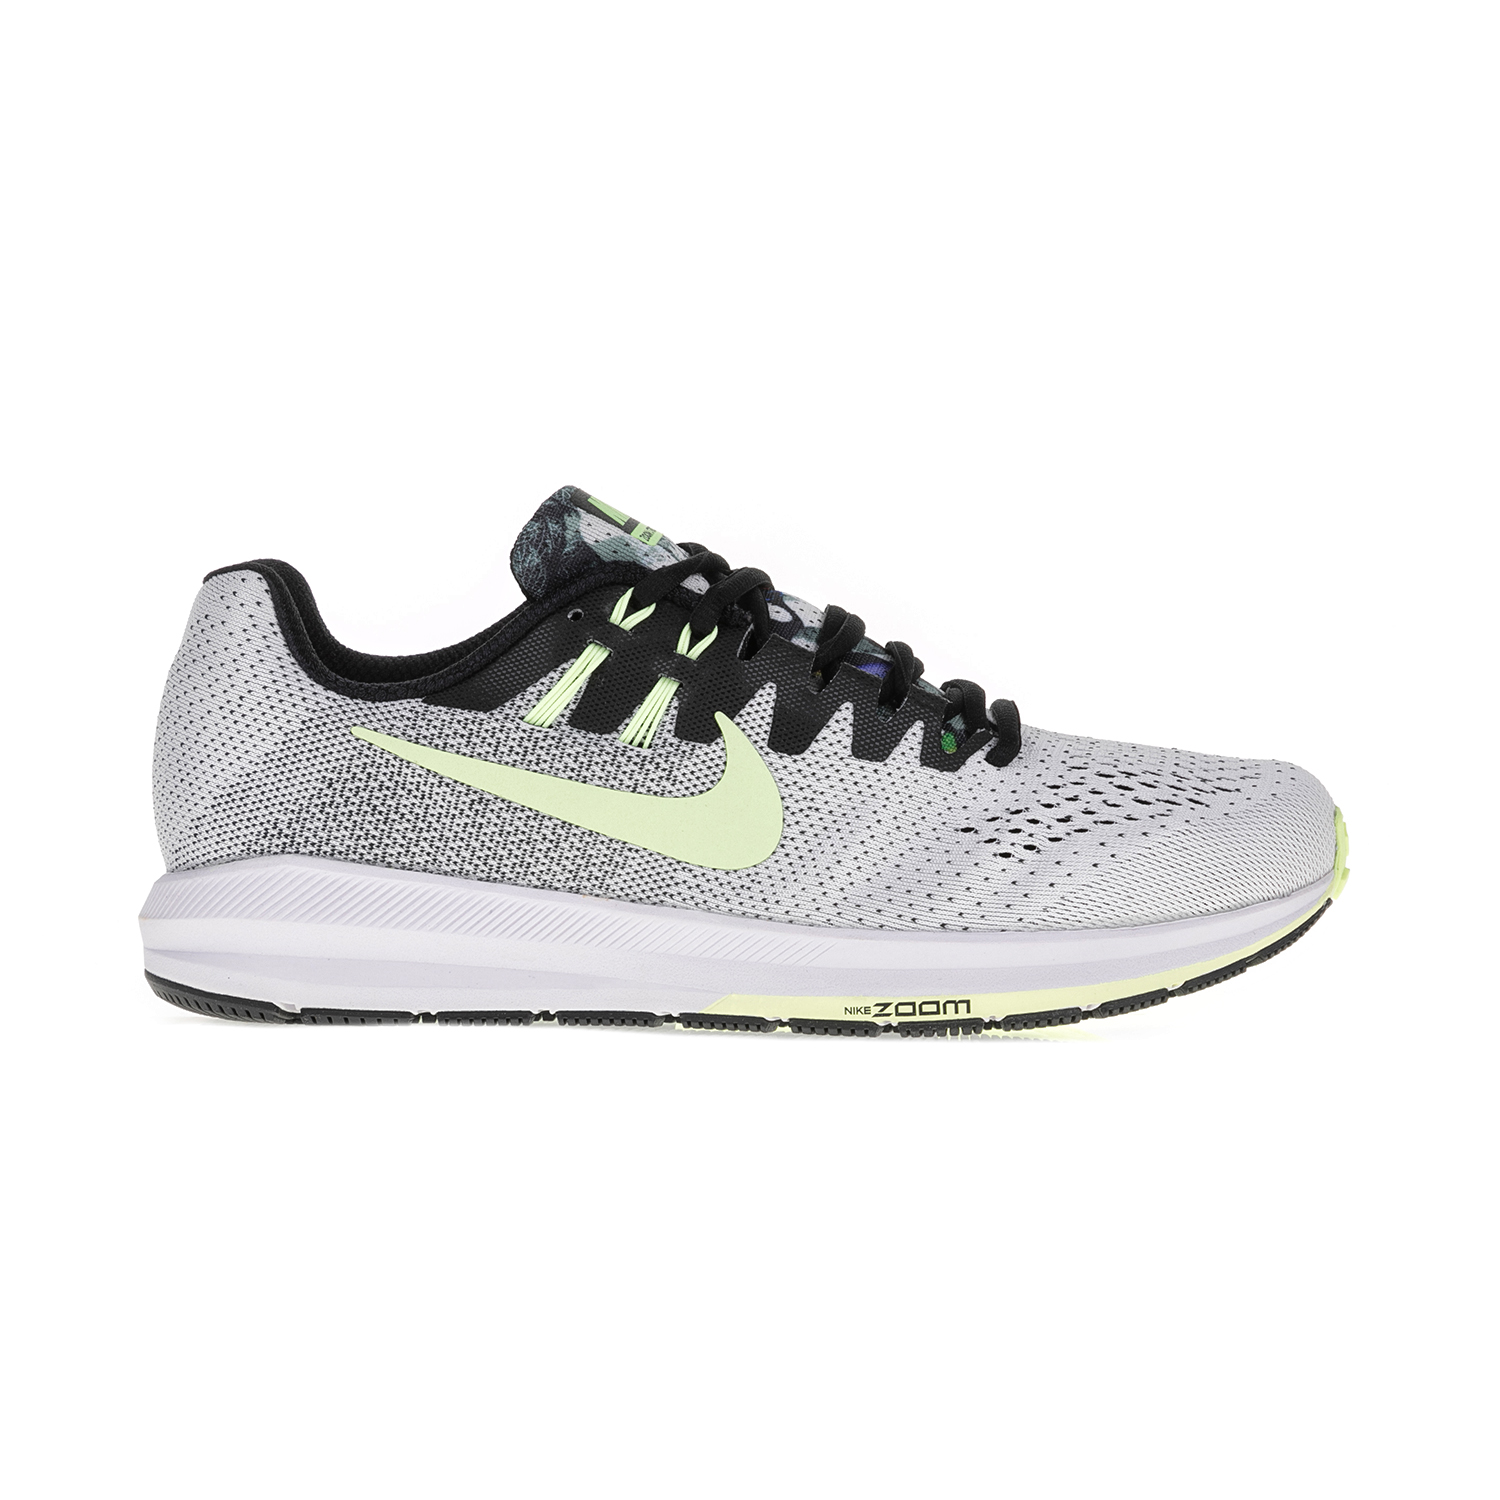 d4c59990af3 NIKE – Ανδρικά αθλητικά παπούτσια AIR ZOOM STRUCTURE 20 SOLSTICE λευκά.  Factoryoutlet